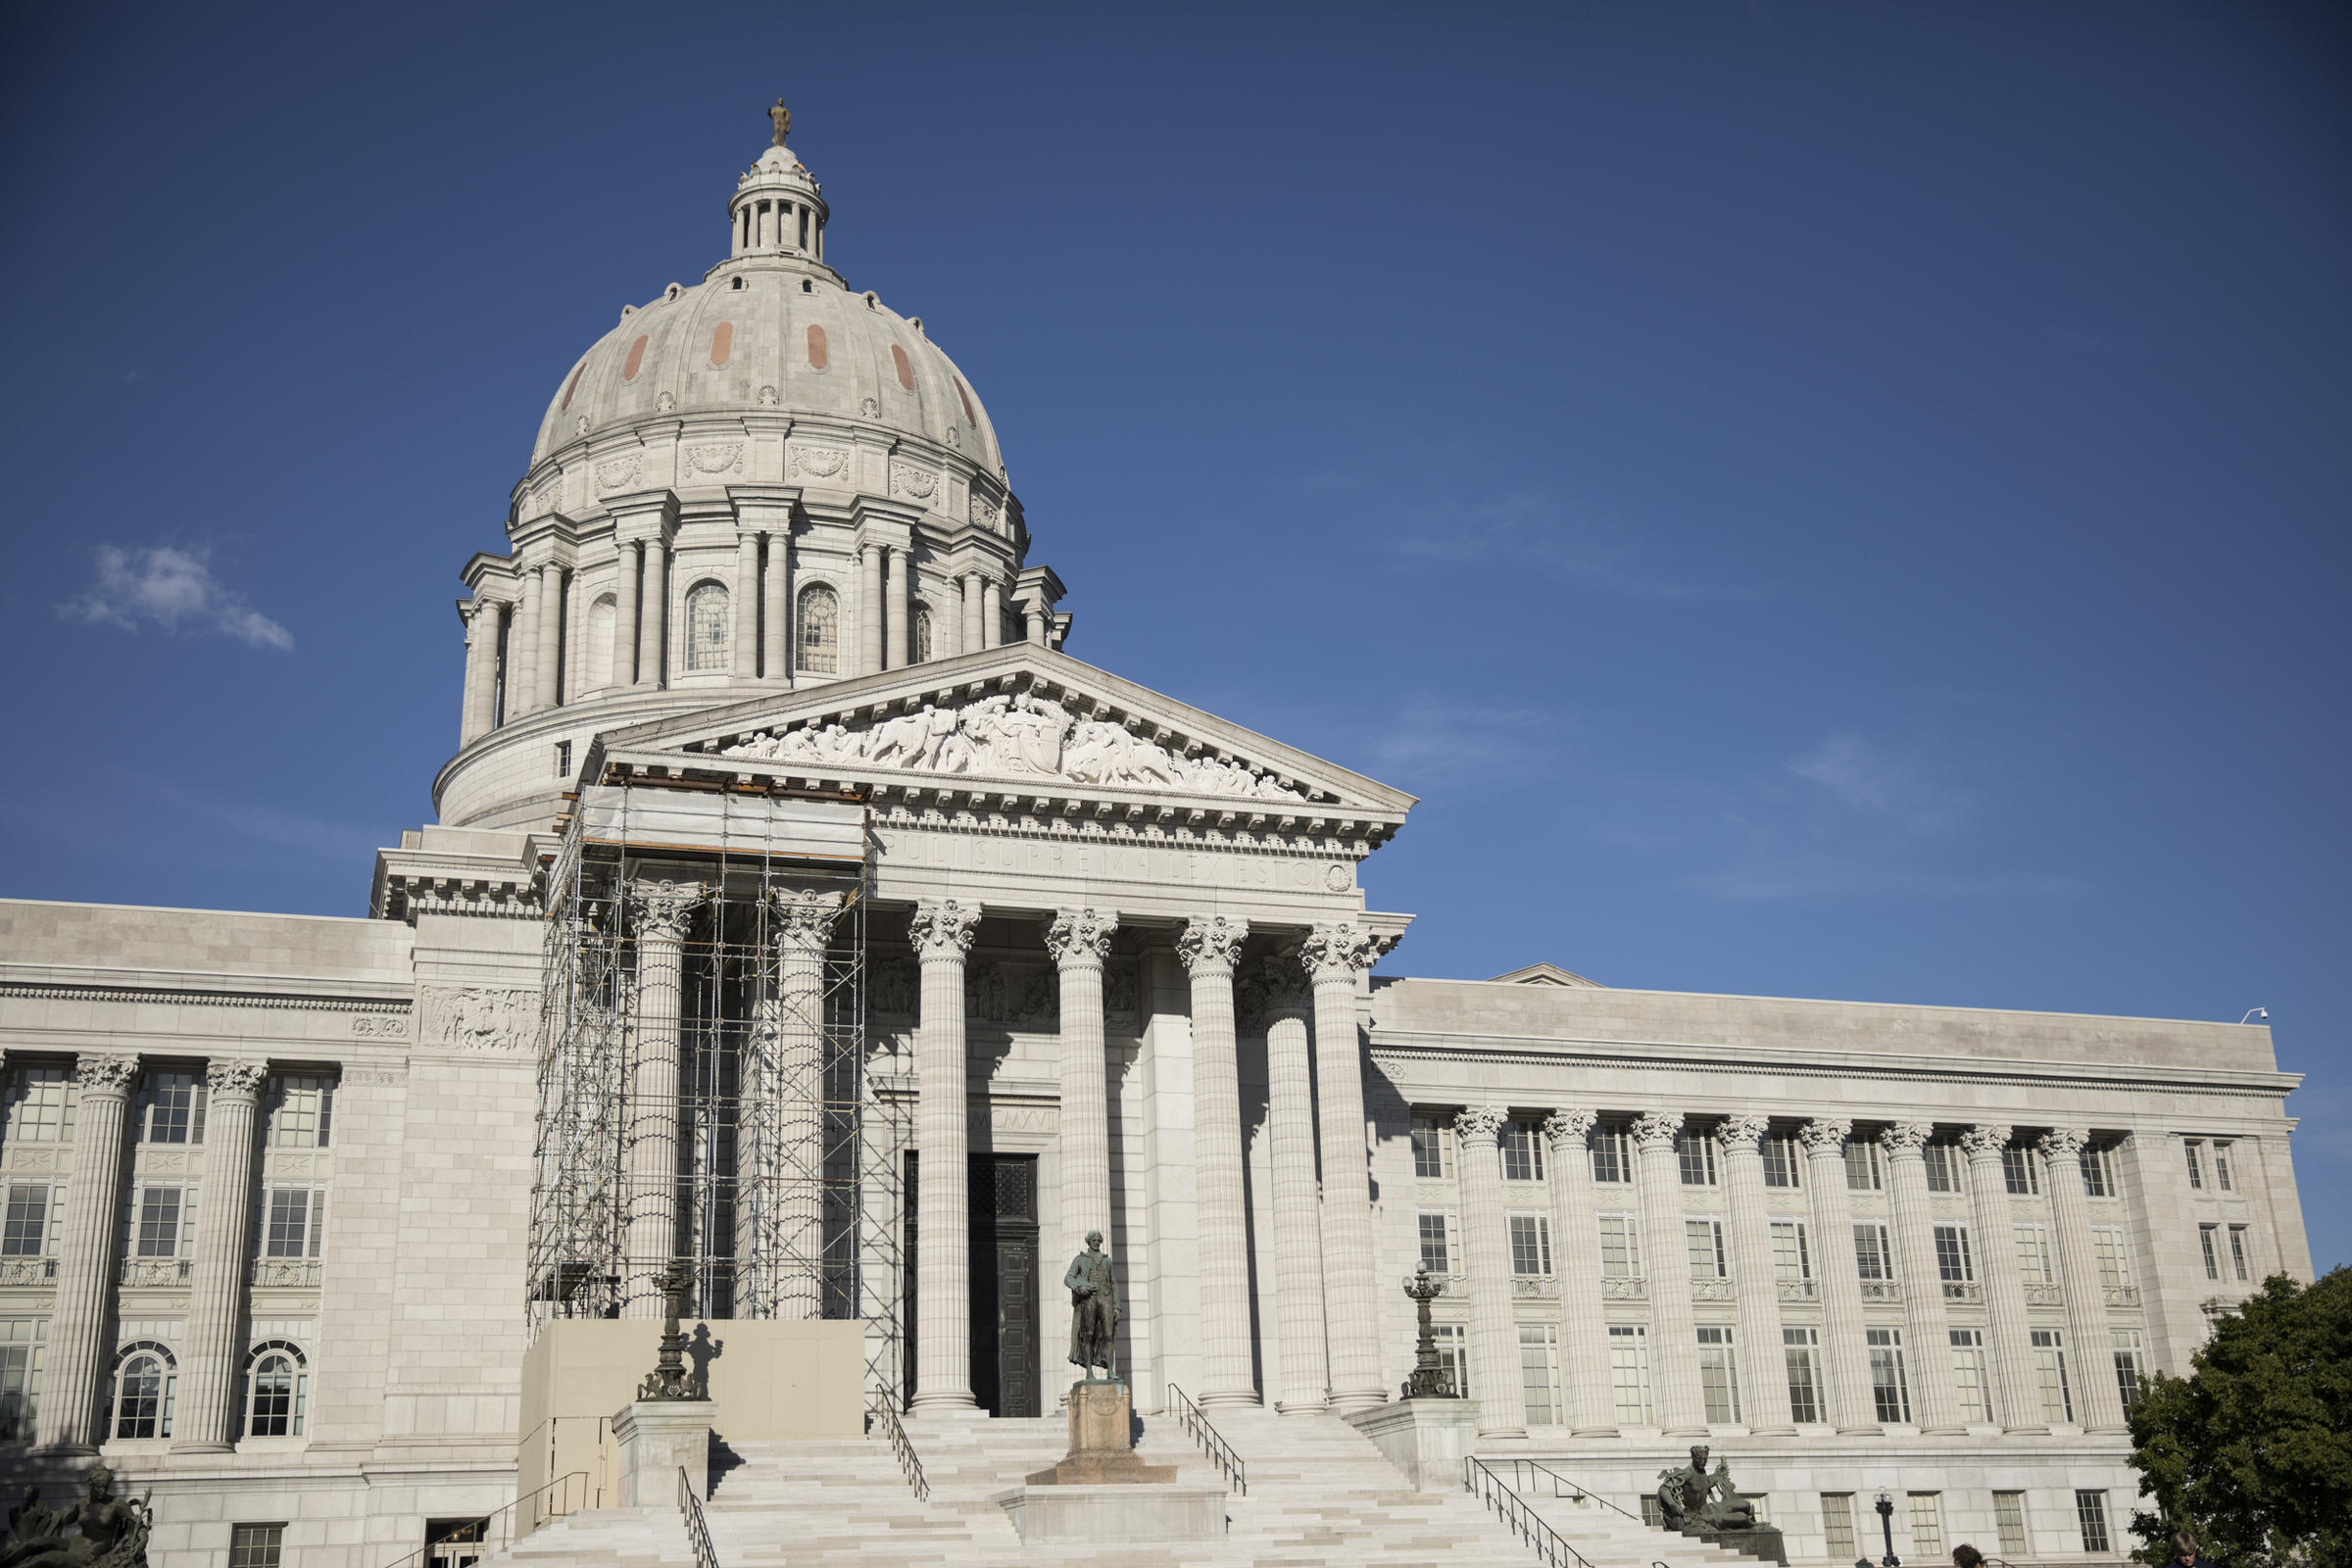 A Proposal To Expand Missouri Tax Incentive Program For Businesses Has Passed The State House But Is Meeting Pushback In Senate